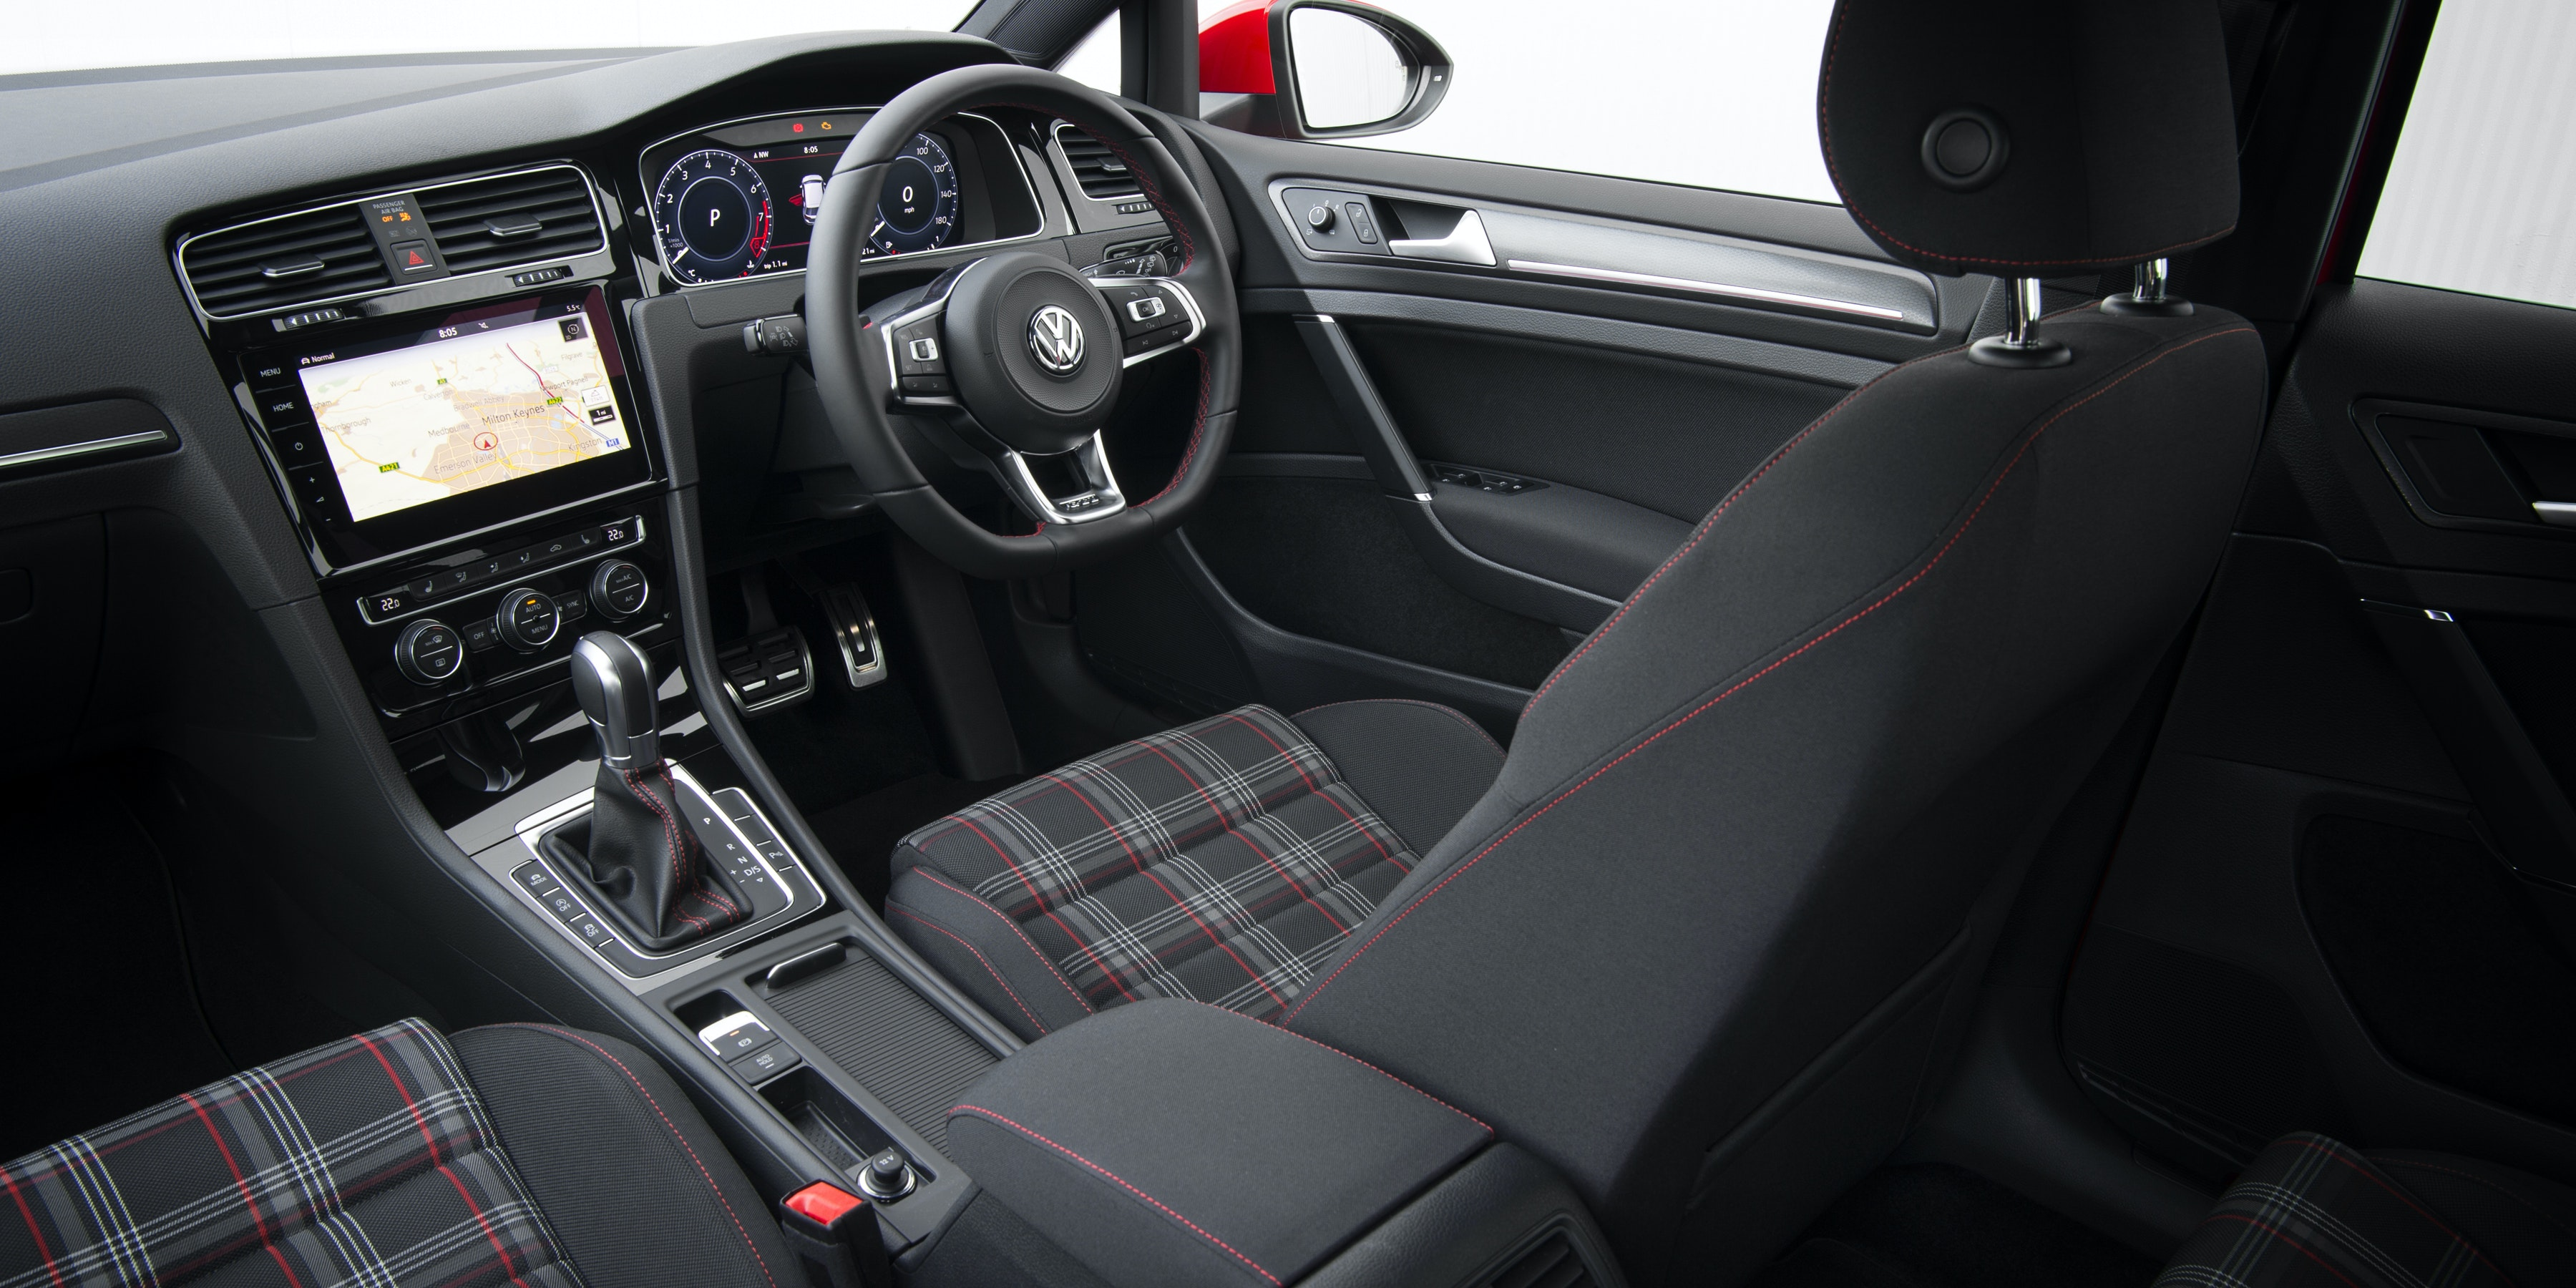 Tartan Seats And Red Stitching Are Classic Golf GTI Features